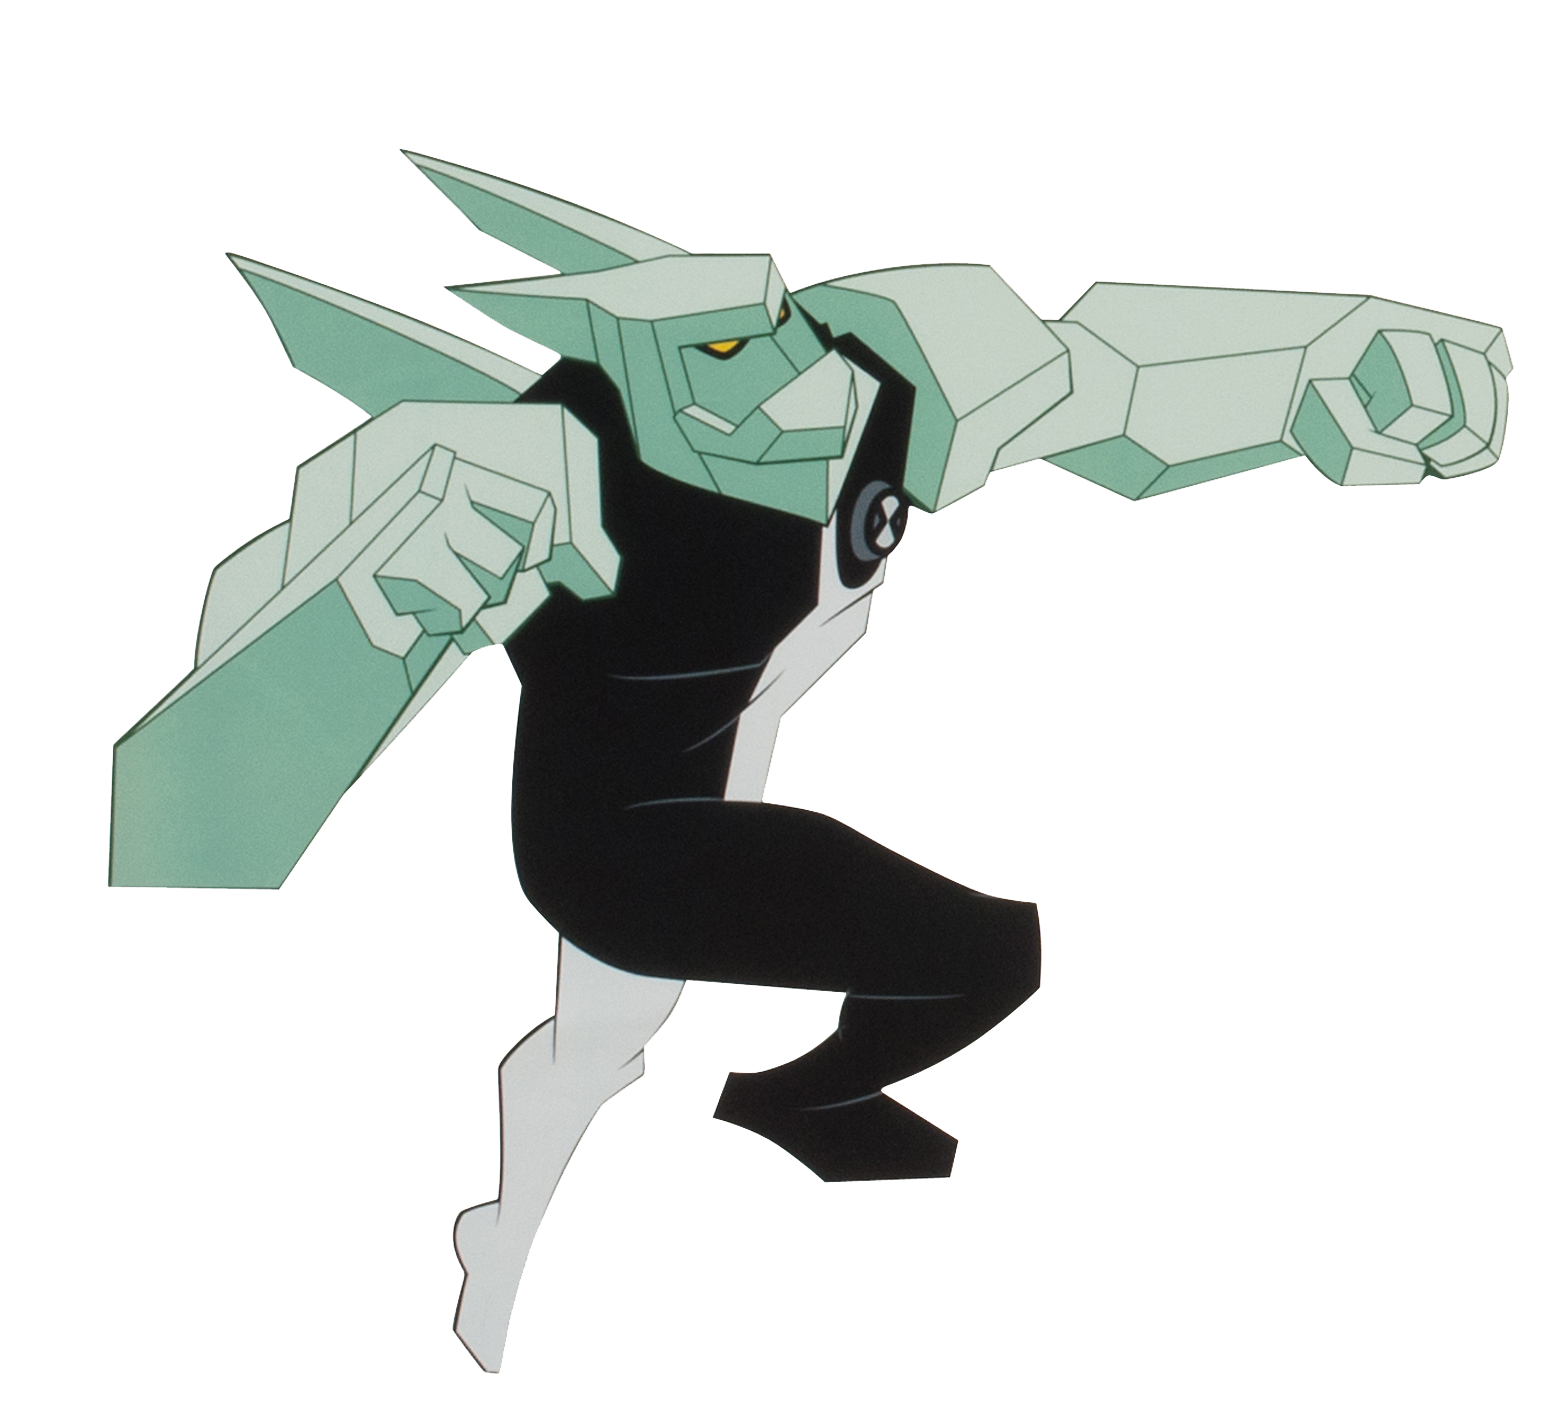 image diamondhead pose png ben 10 wiki fandom powered by wikia